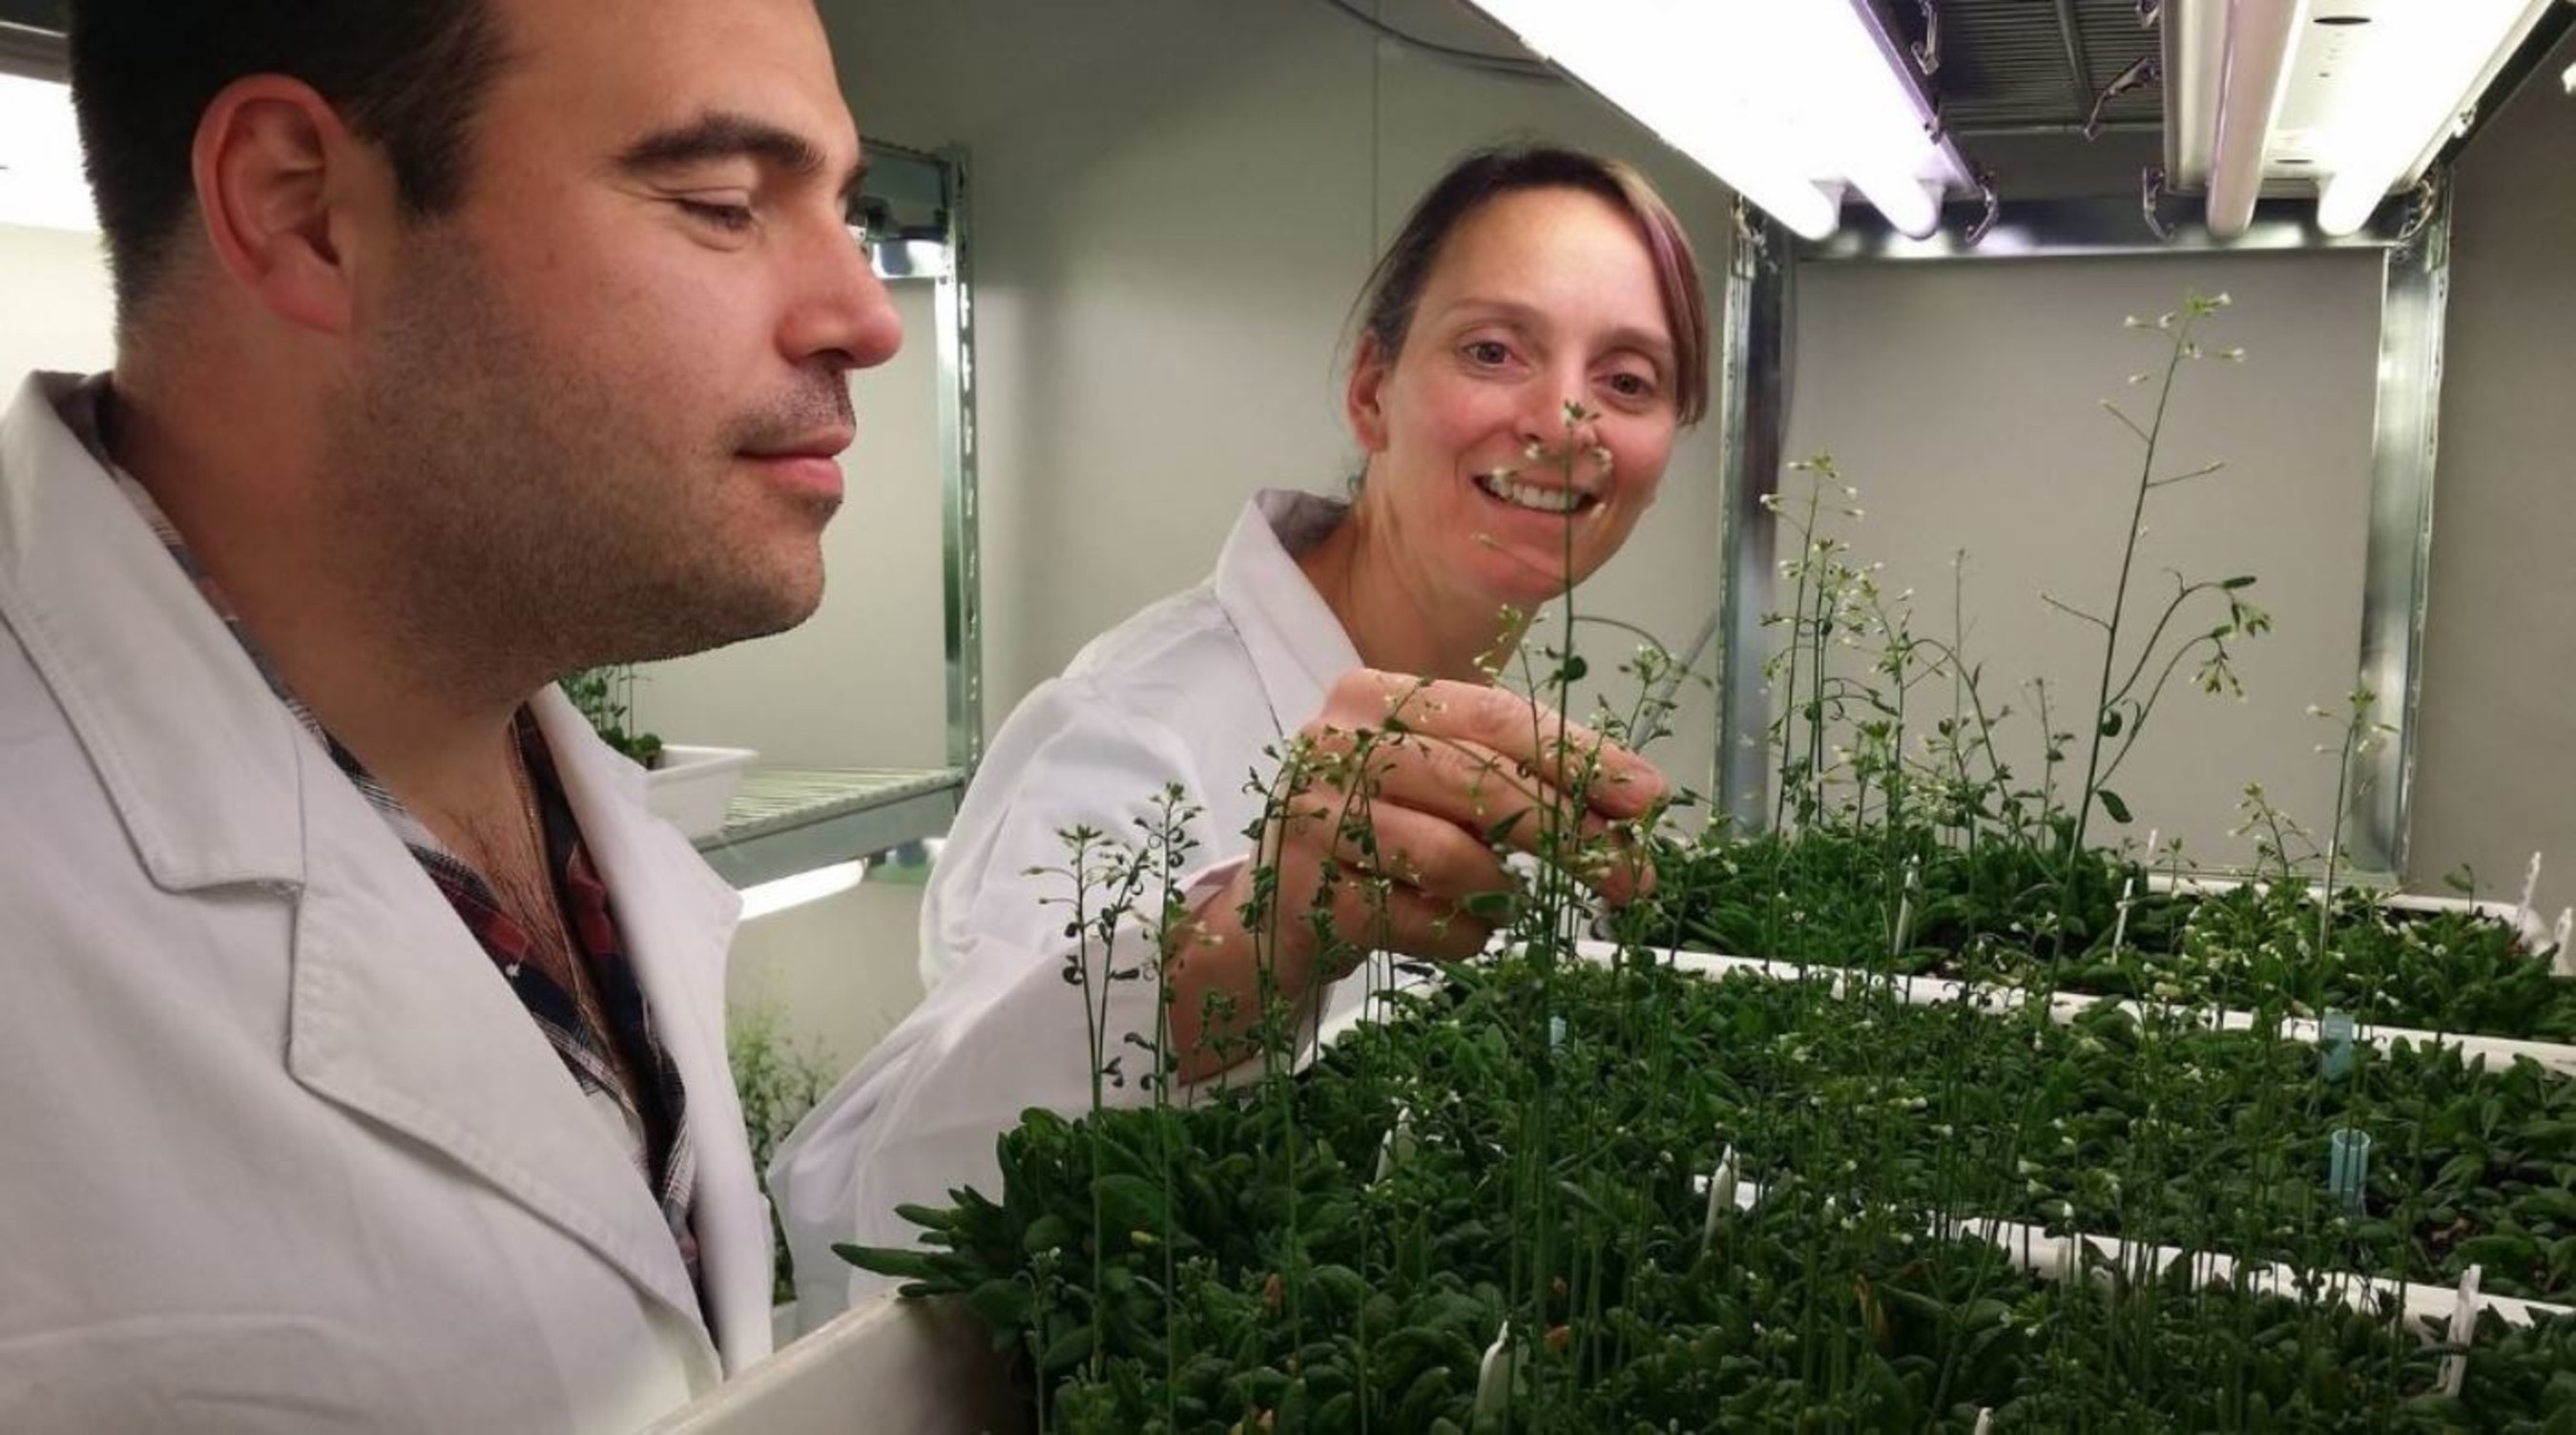 Supercomputing research by IBM and Australian universities reveals the molecular structure of plants